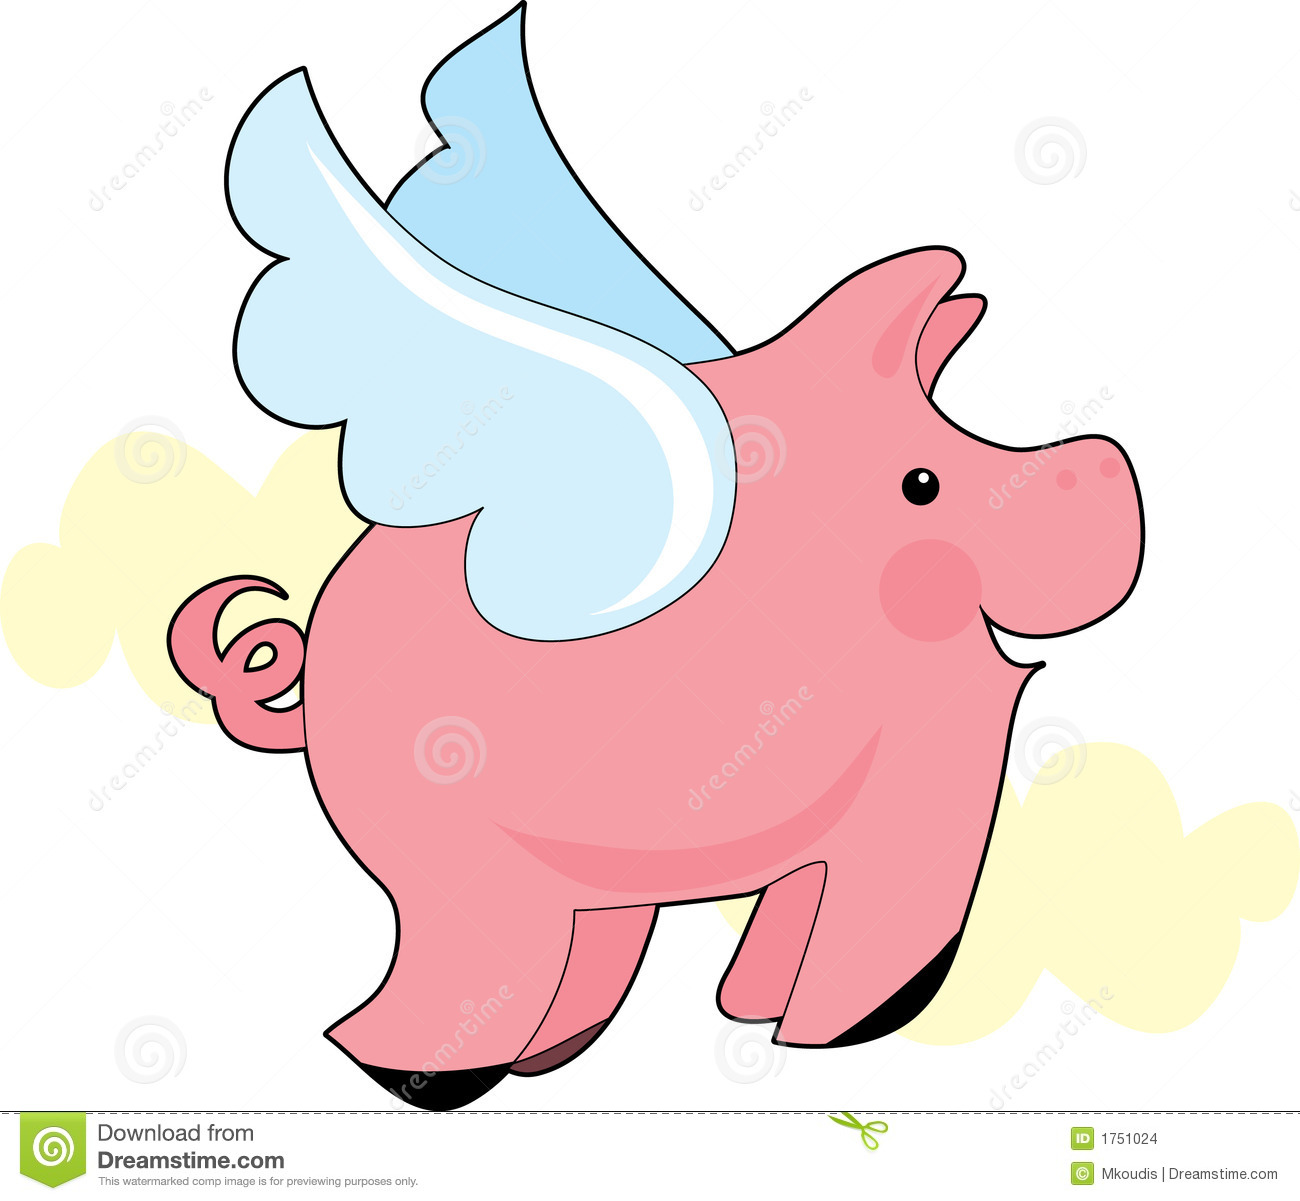 11 pigs clipart image transparent library 11+ Flying Pig Clipart | ClipartLook image transparent library